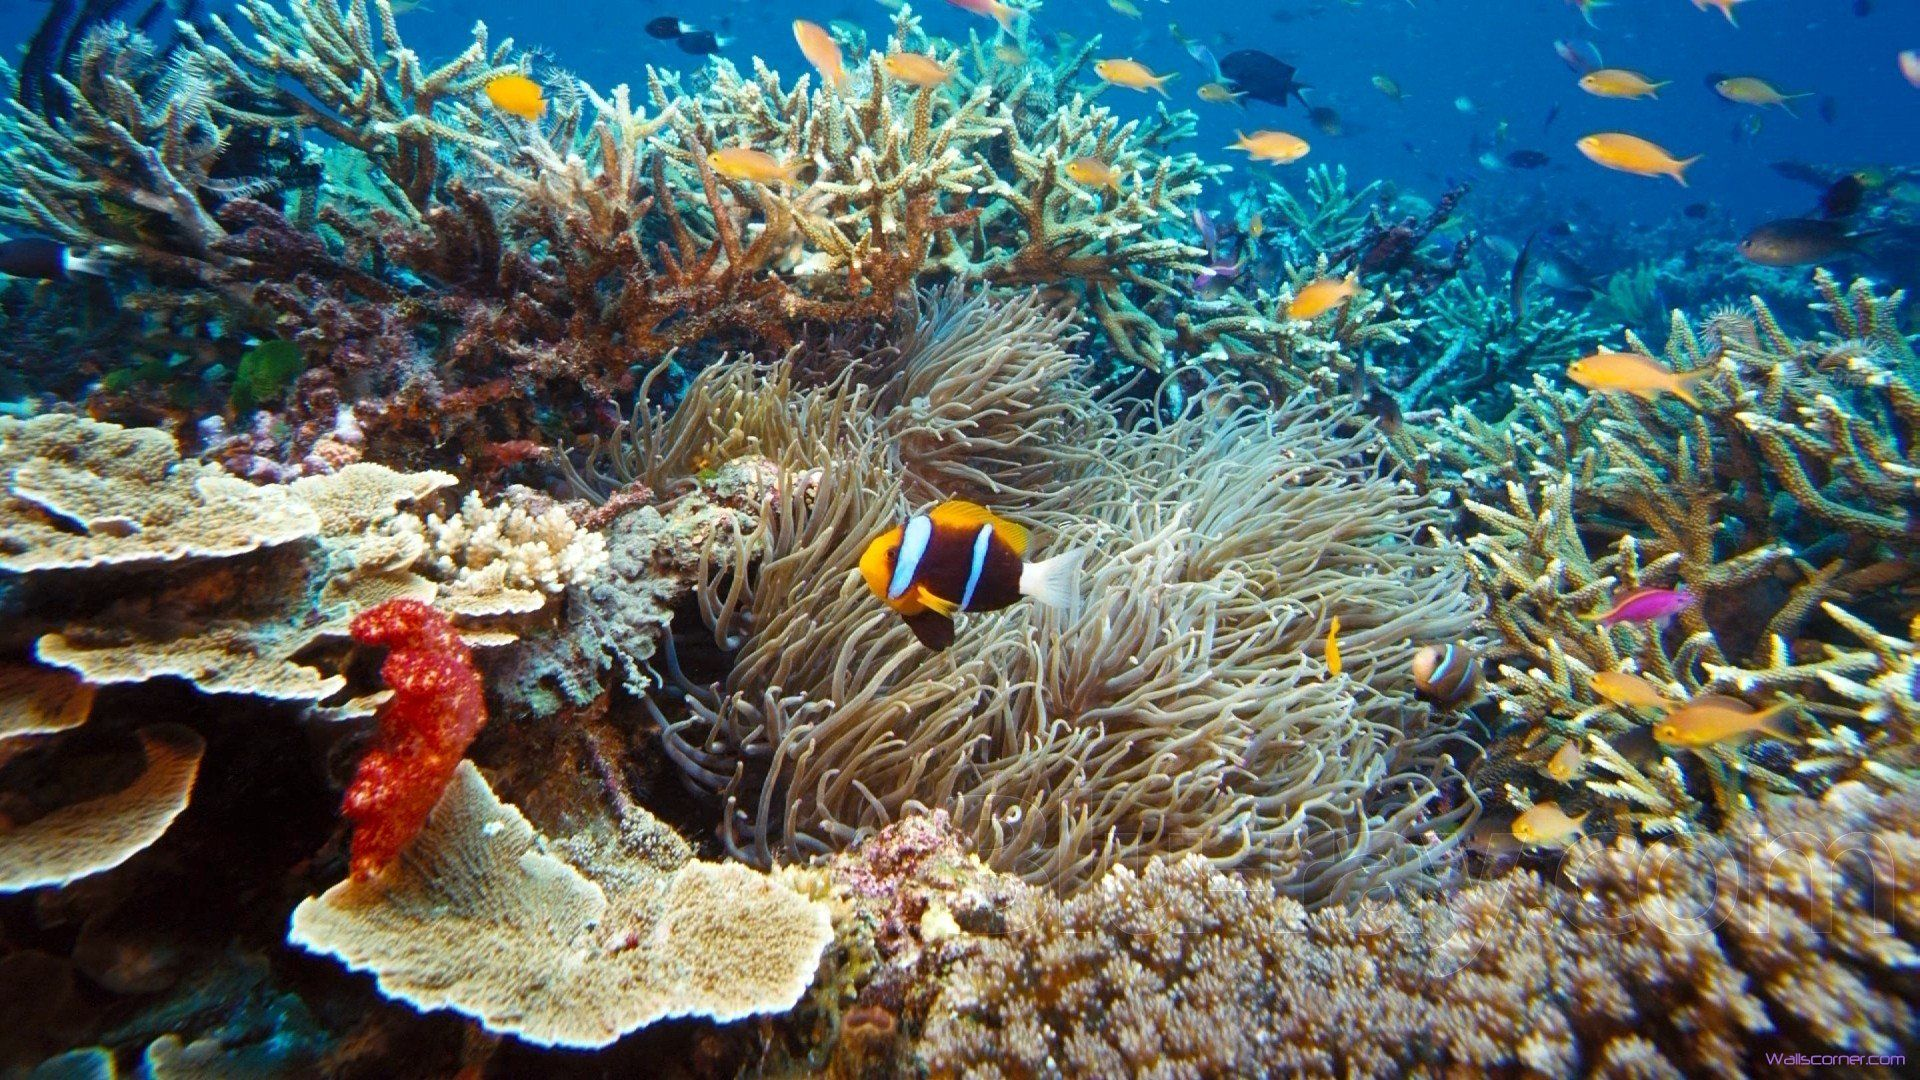 Image result for under the sea image